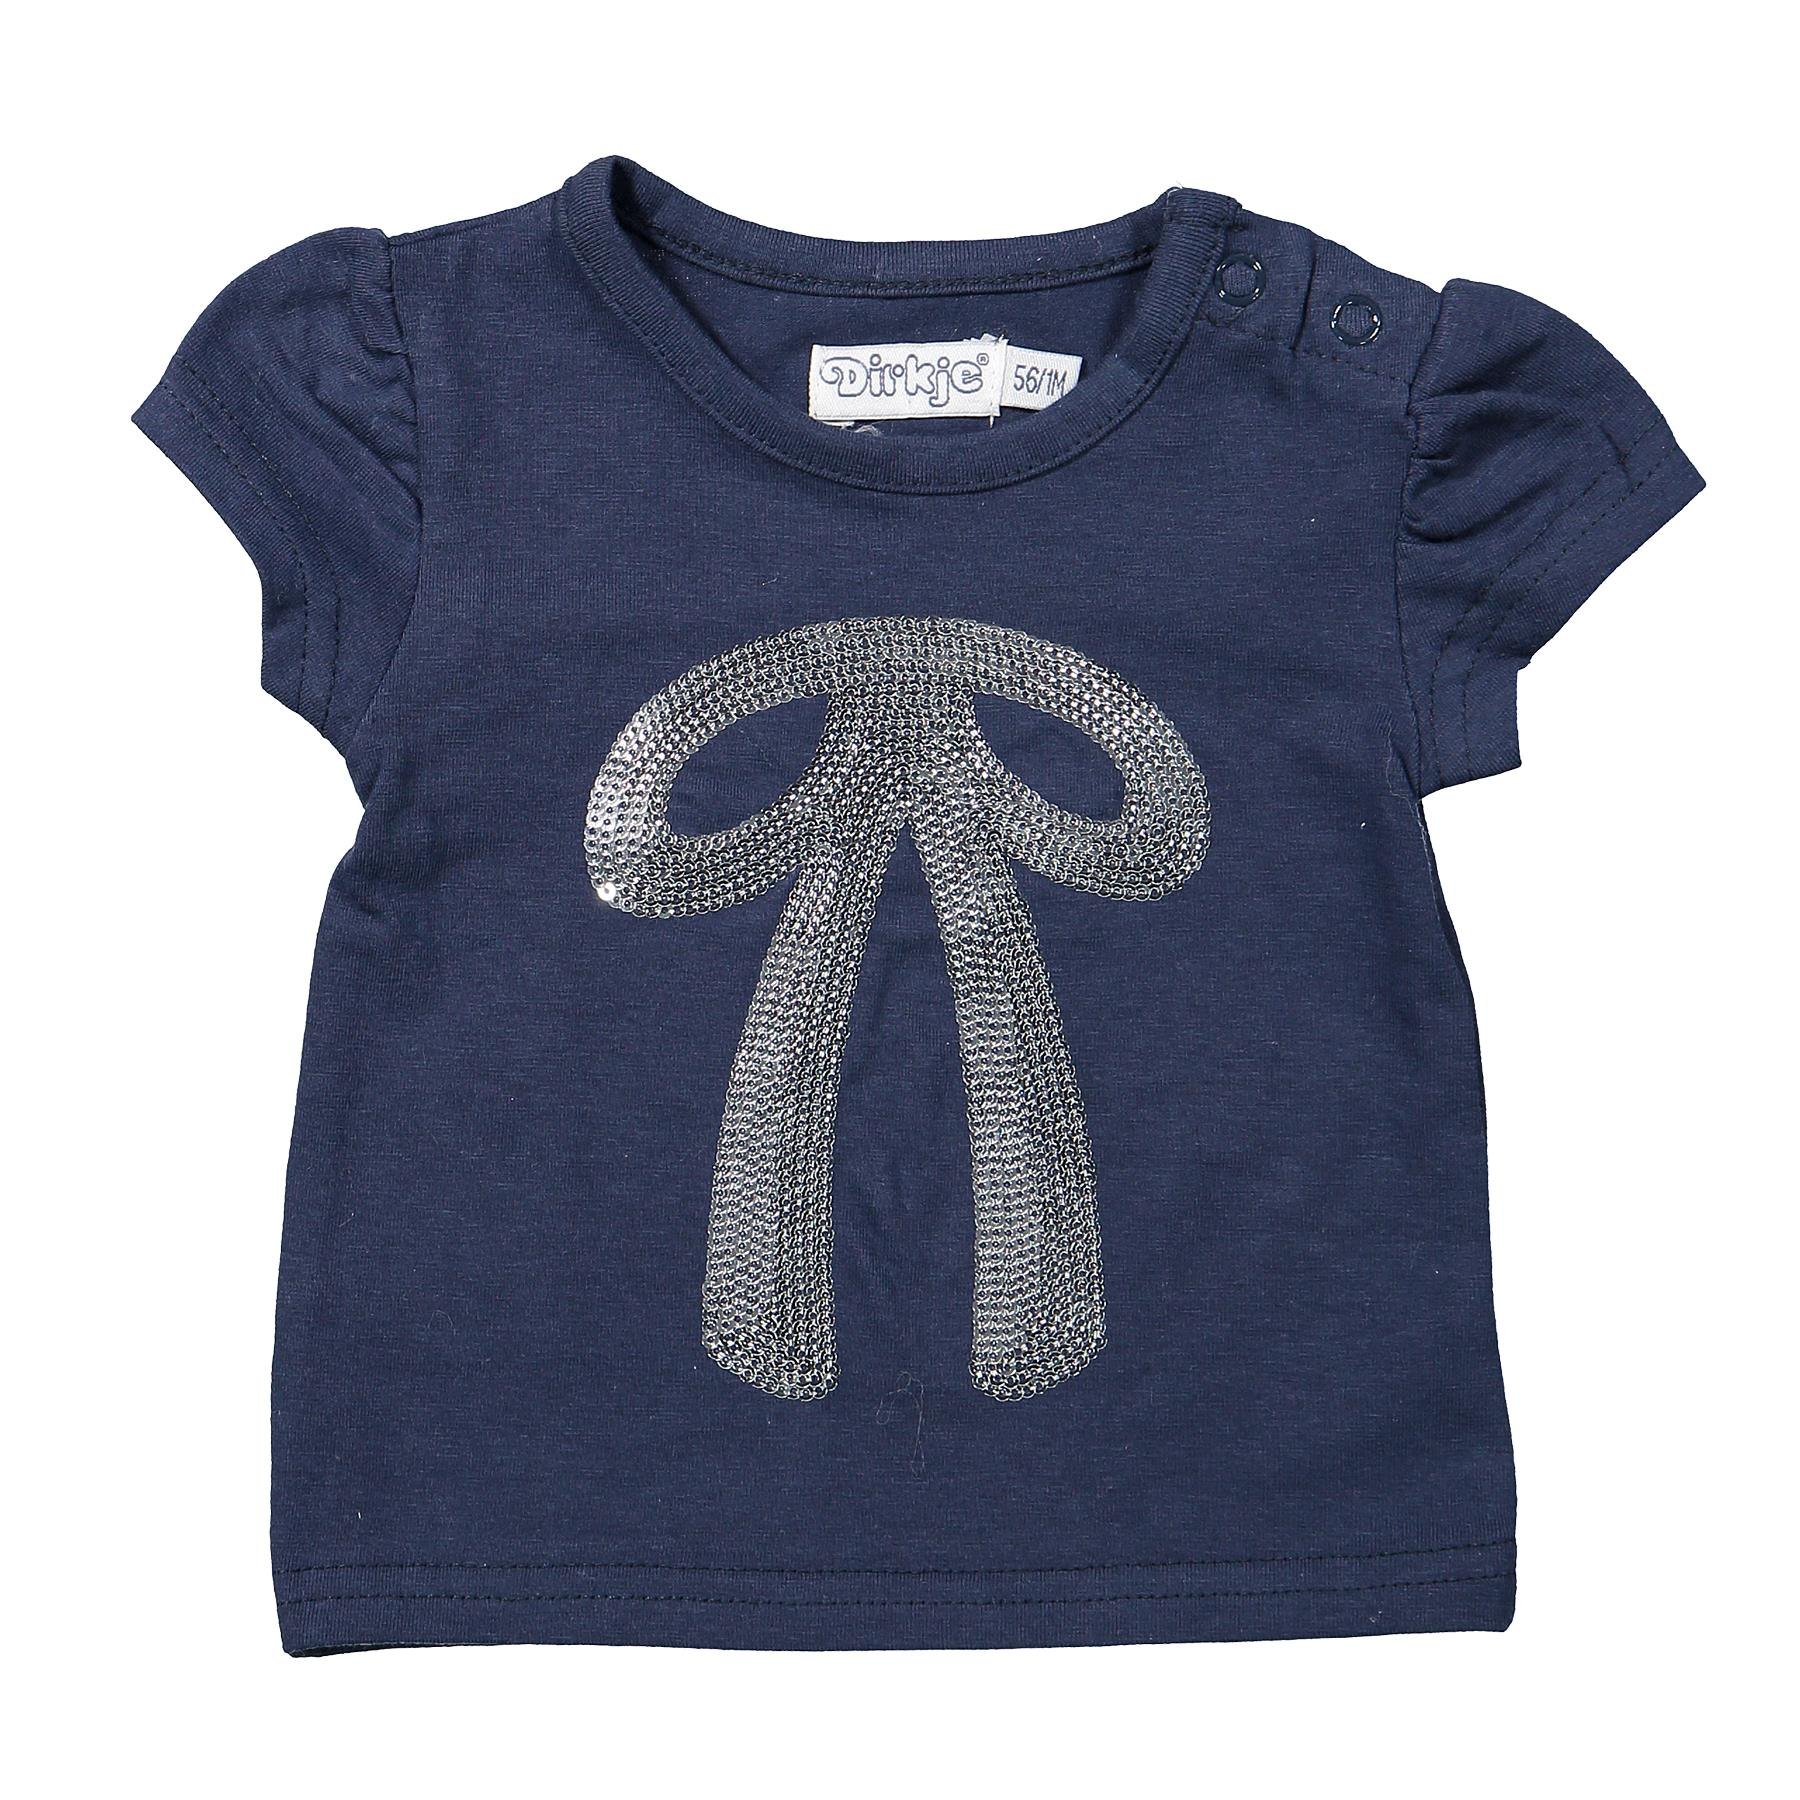 DIRKJE Tričko A-SO FRESH BOWTIQUE vel. 86 Navy